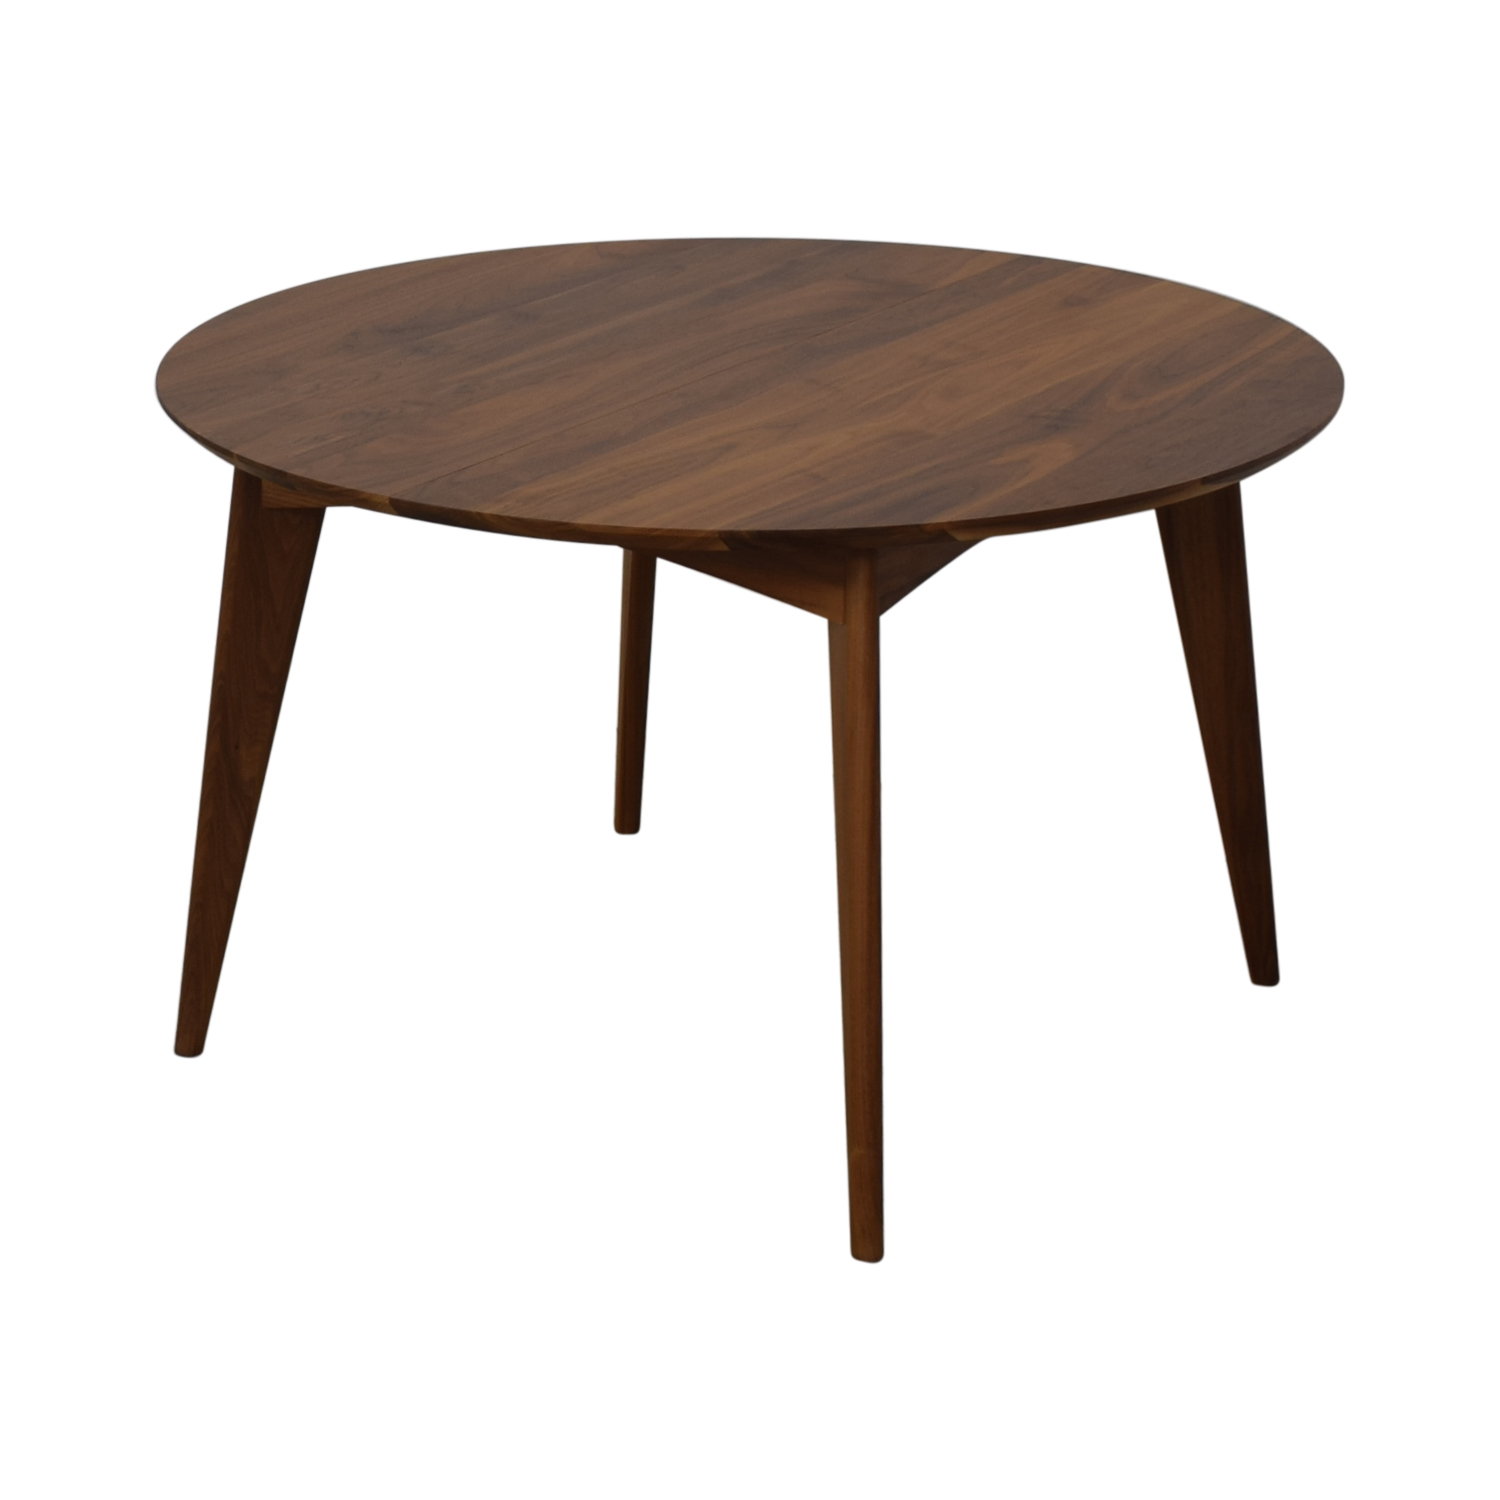 Room & Board Room & Board Ventura Round Extension Table for sale